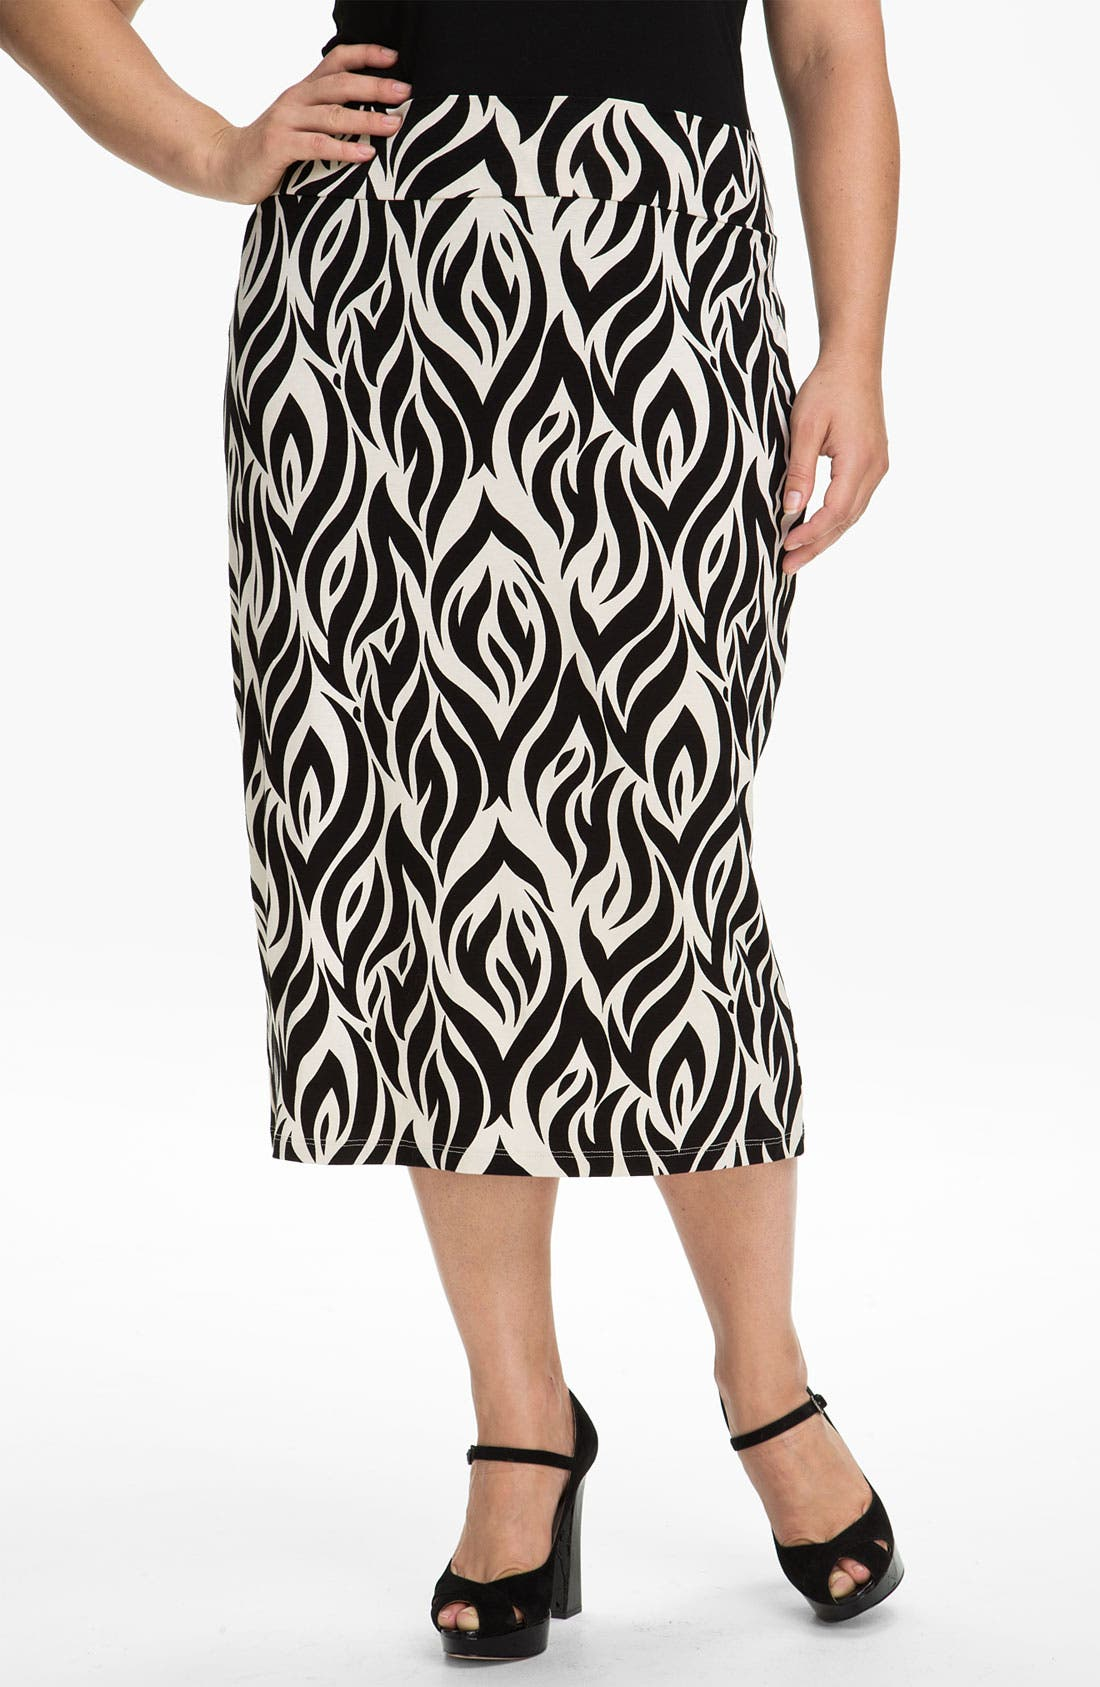 Alternate Image 1 Selected - Rachel Pally 'Bonnie' Print Knit Skirt (Plus)